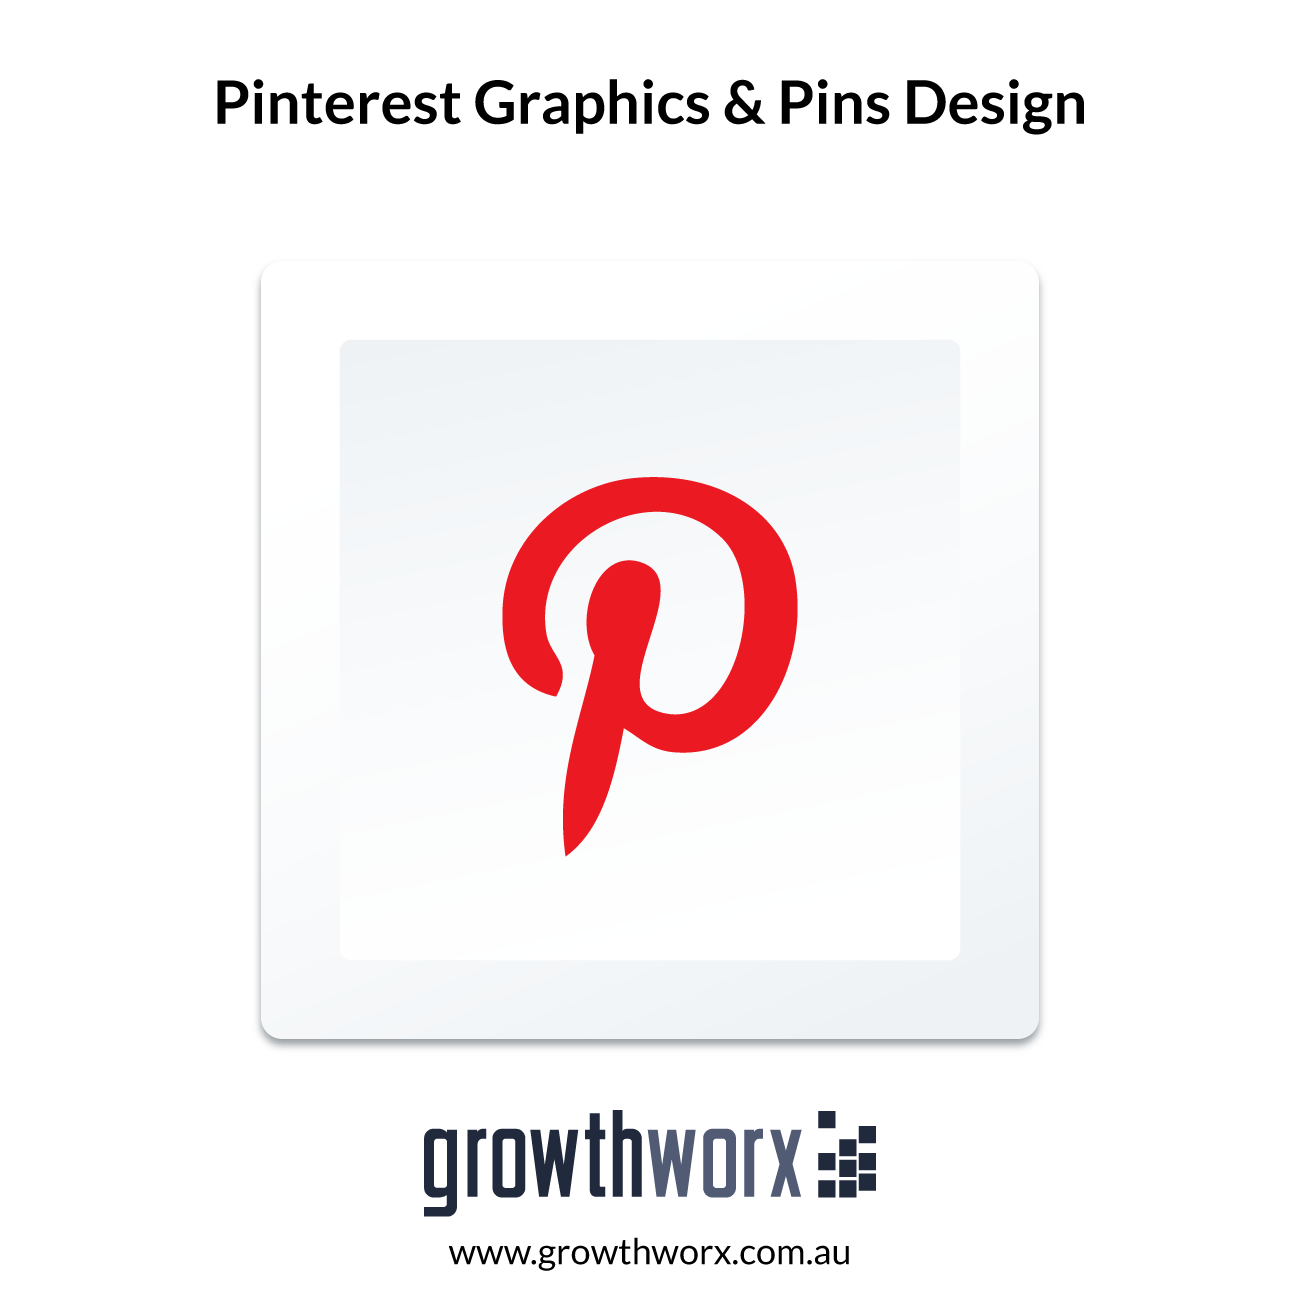 I will design 50 professional pinterest graphics and pins 1